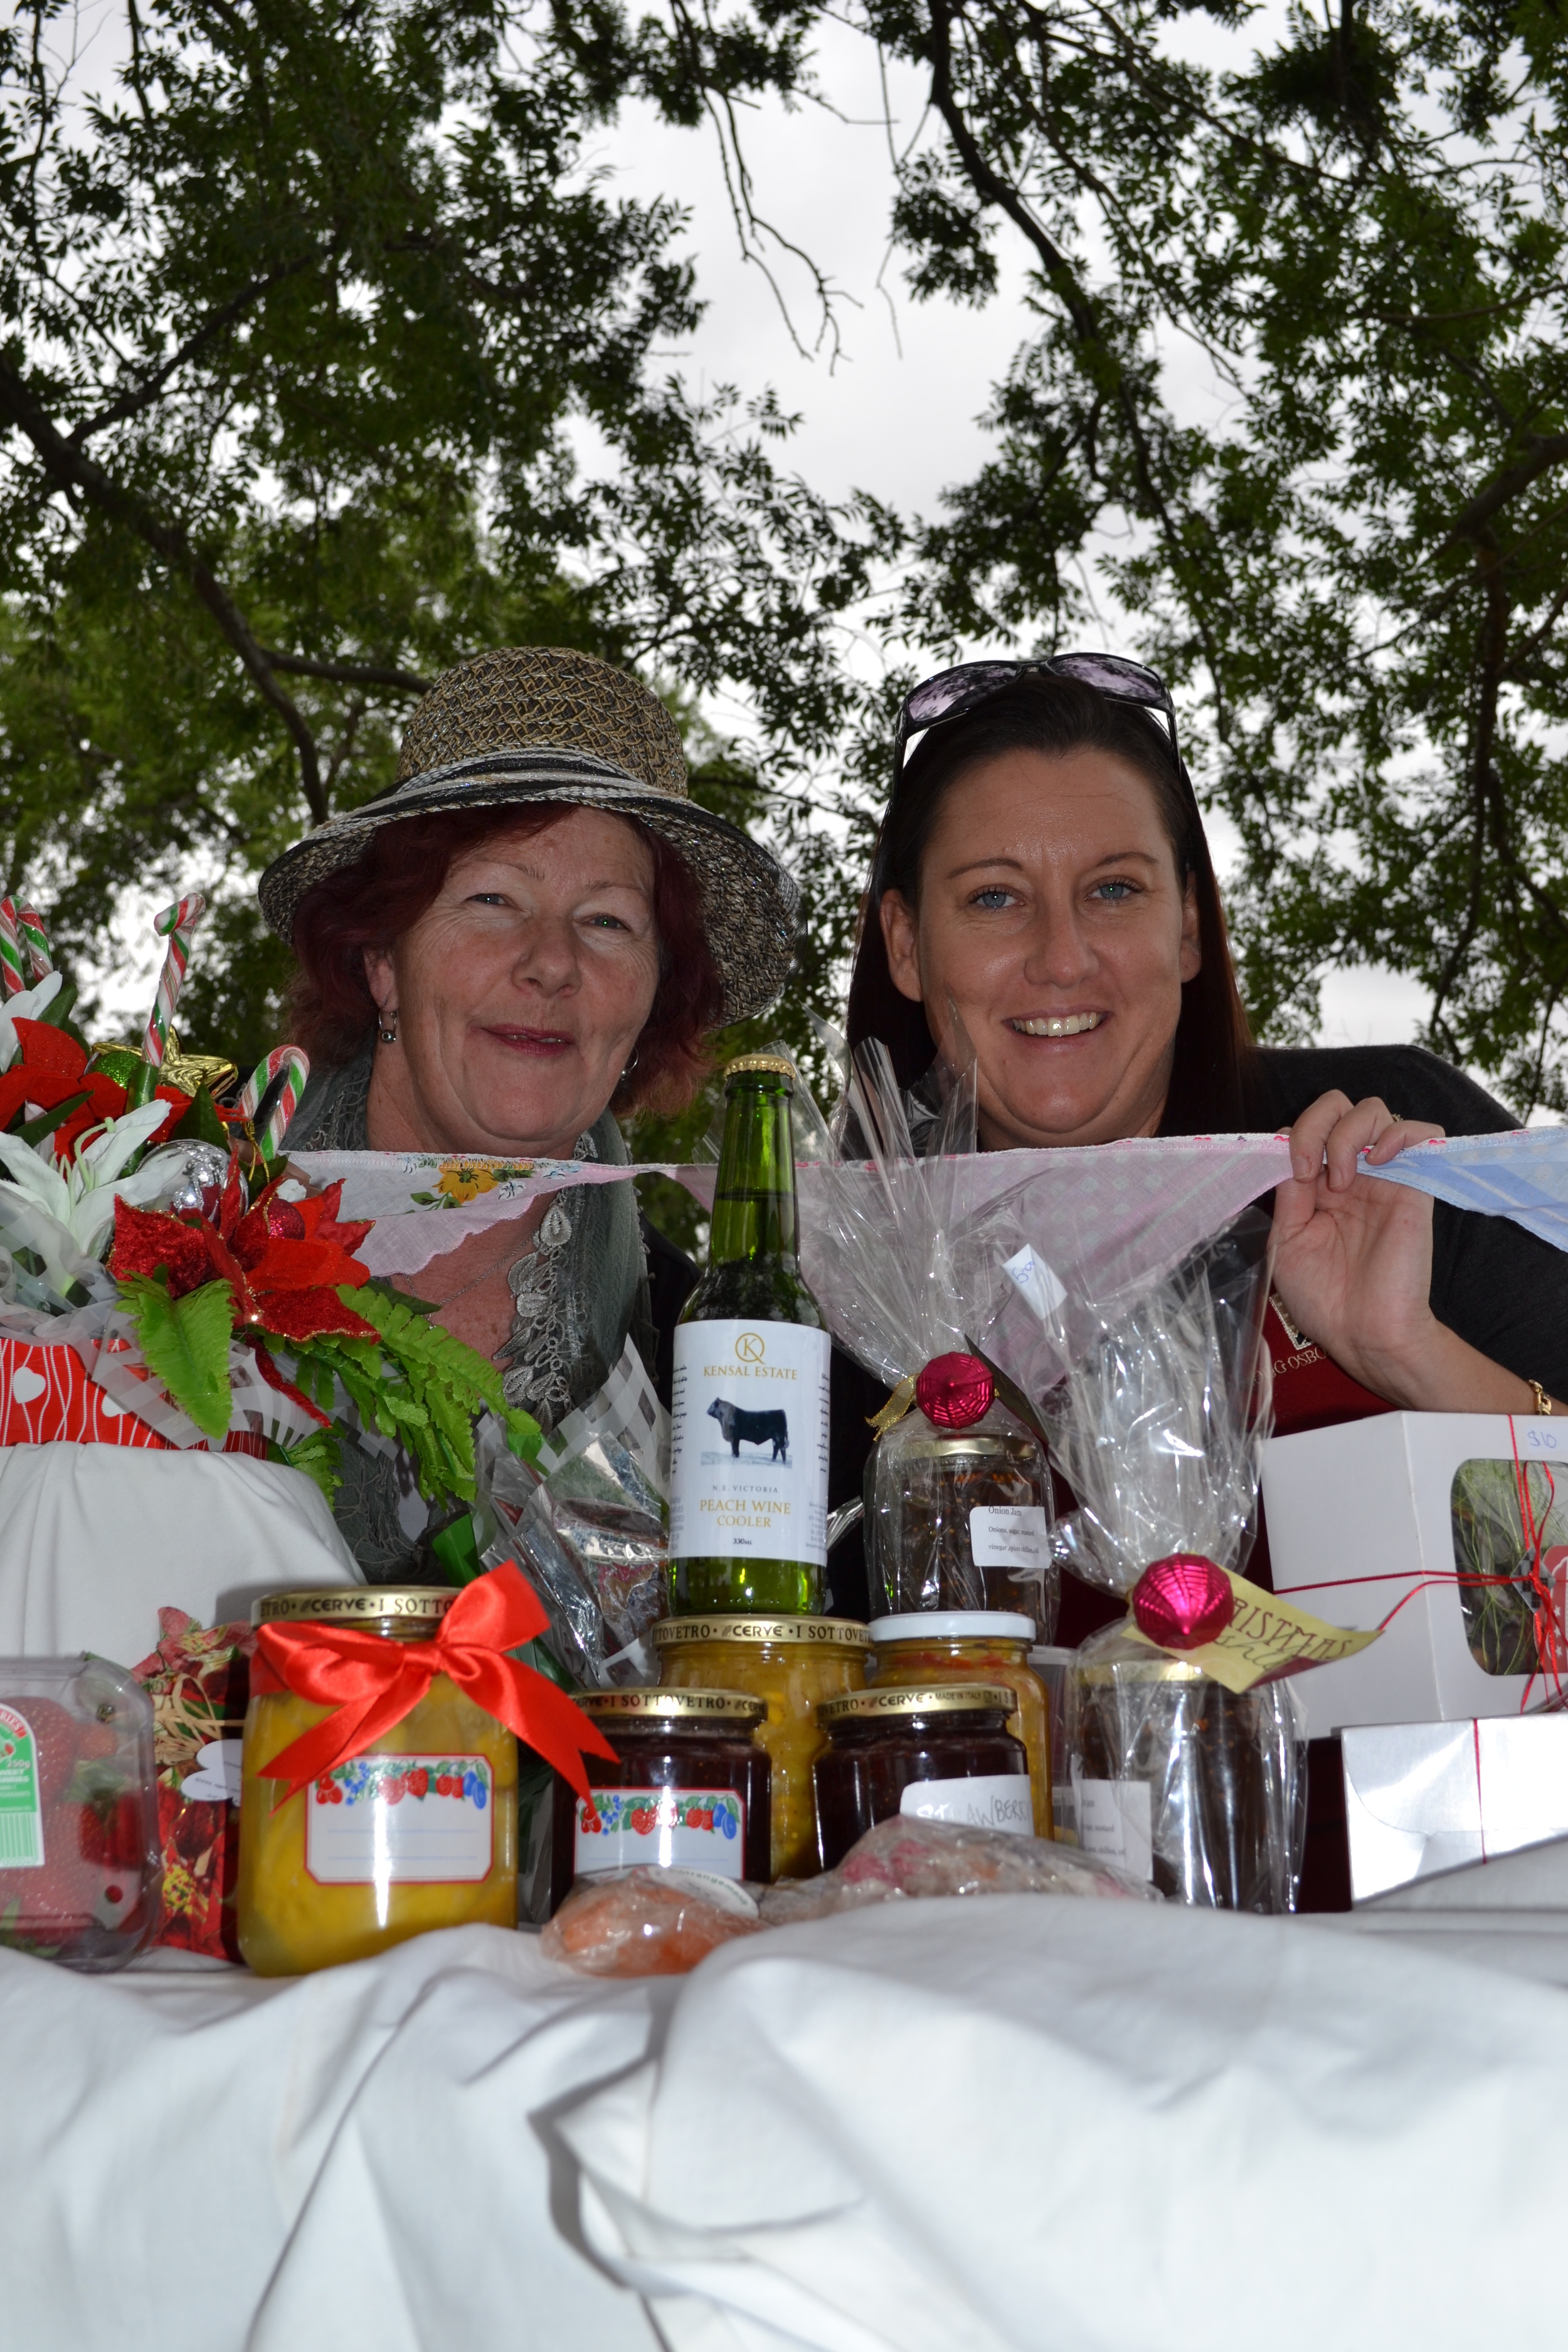 Homemade heaven: Koonoomoo Farmers' Market coordinator Kellie Byford (right) and committee member Lorraine Swanson-Hoyle show off stallholders' local products. Picture: Toni Brient.